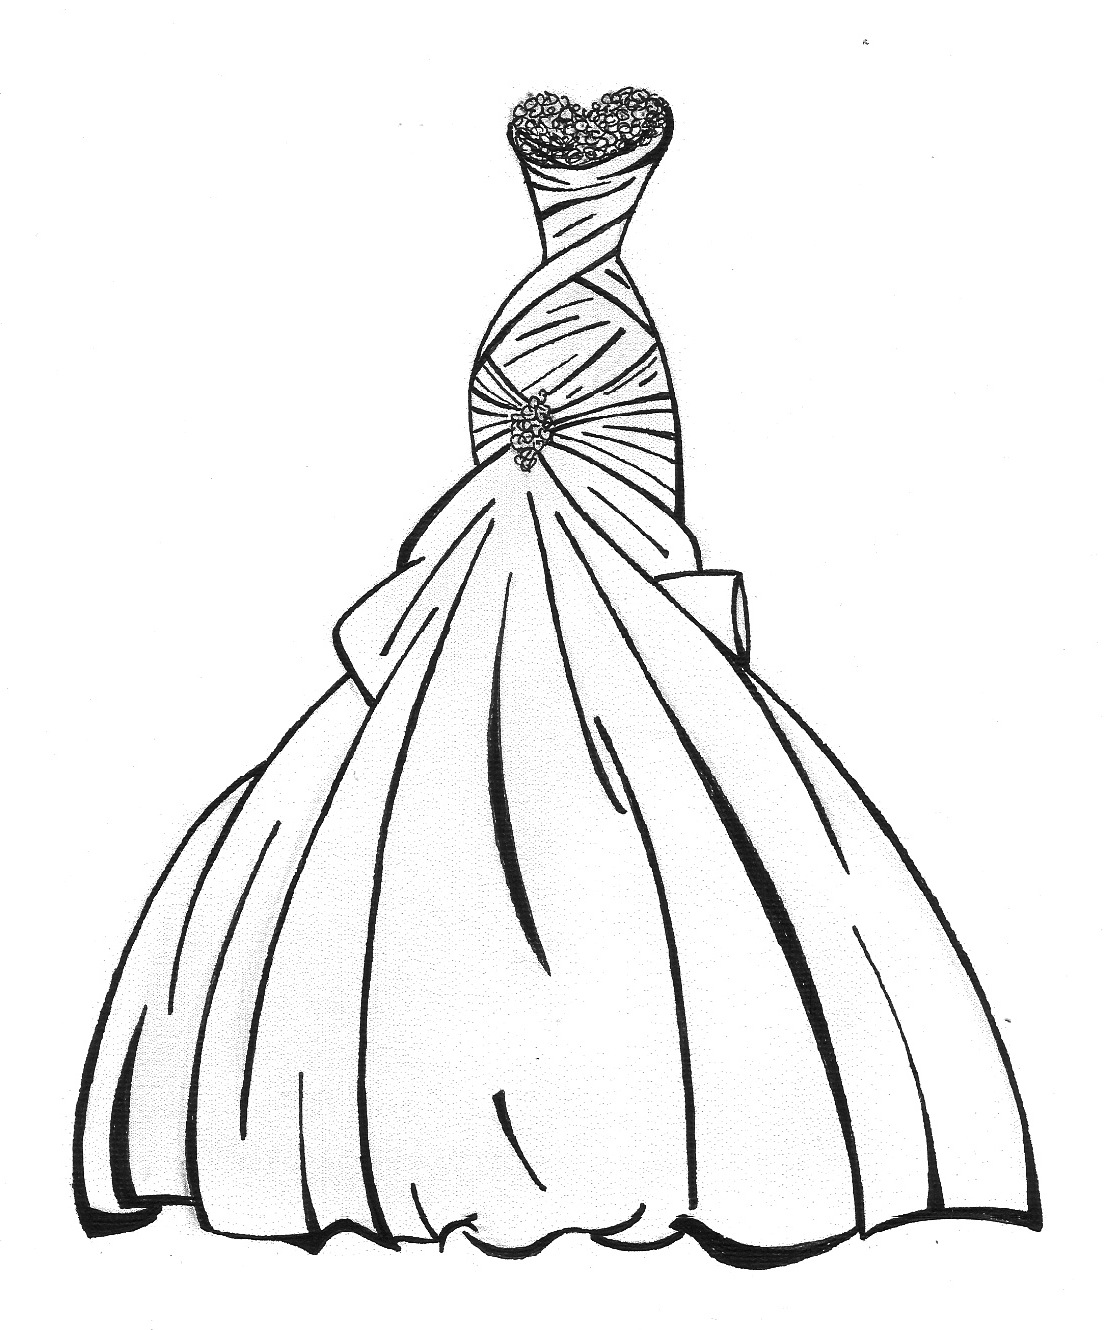 Drawn wedding dress fancy dress Your Free With Picture with